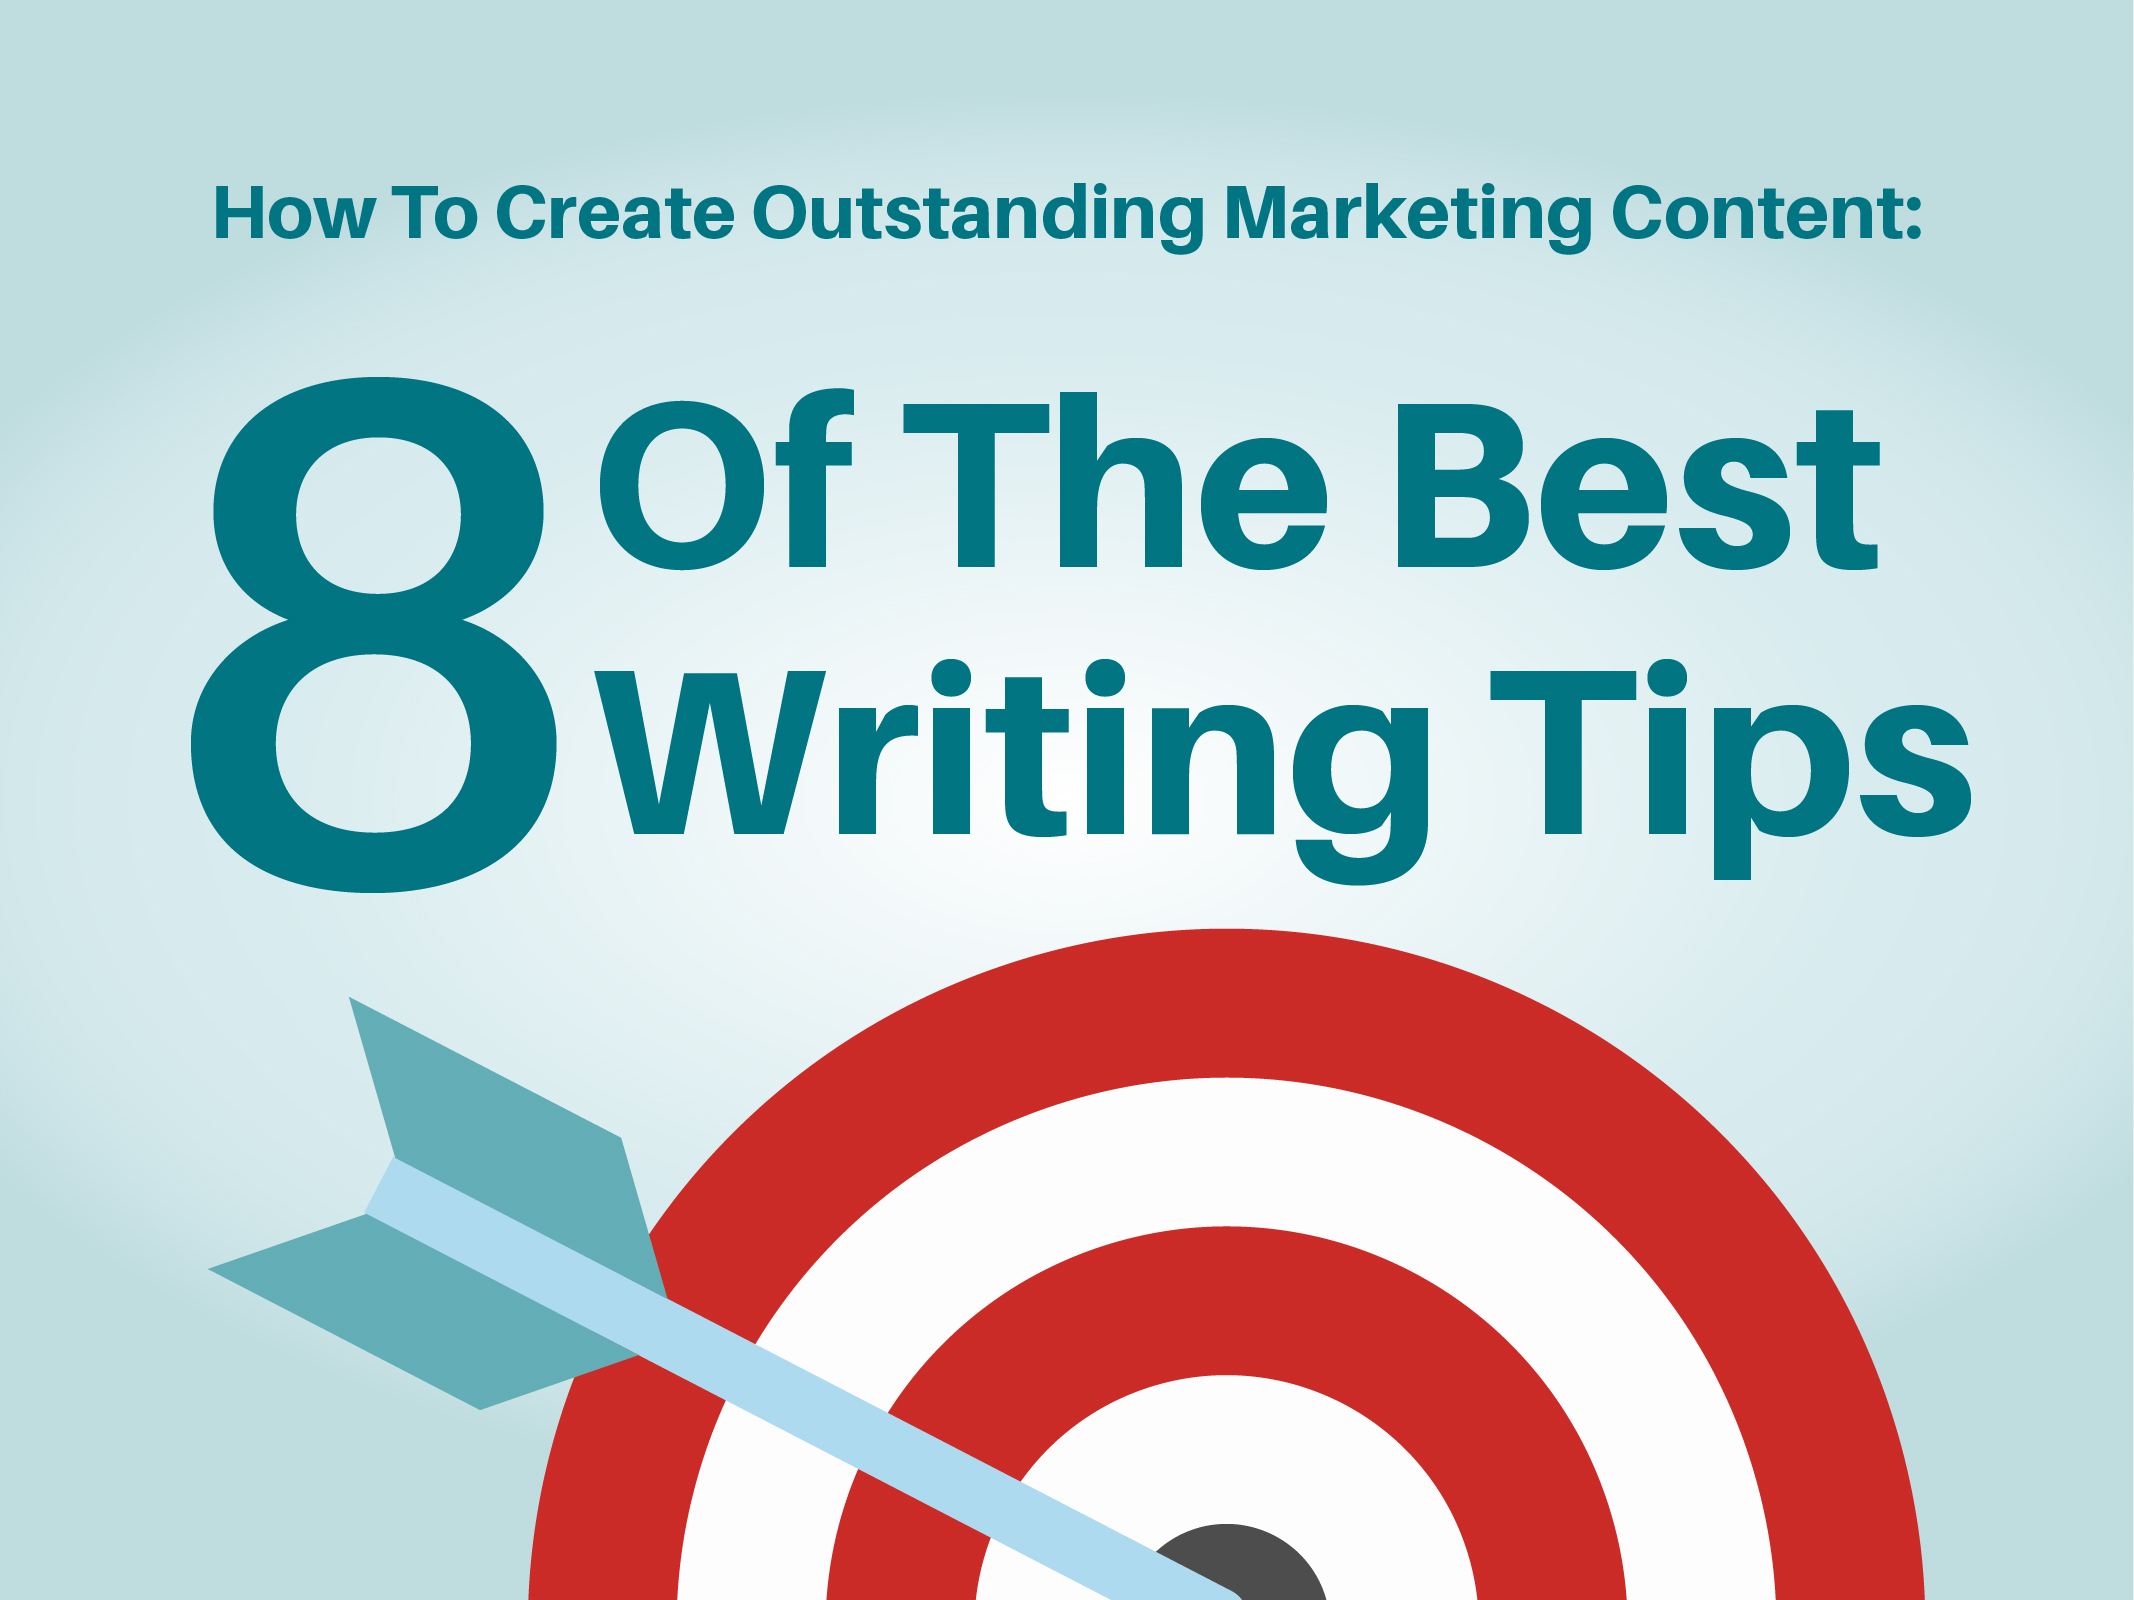 Infographic: 8 Top Writing Tips You Need To Know For Successful Content Marketing